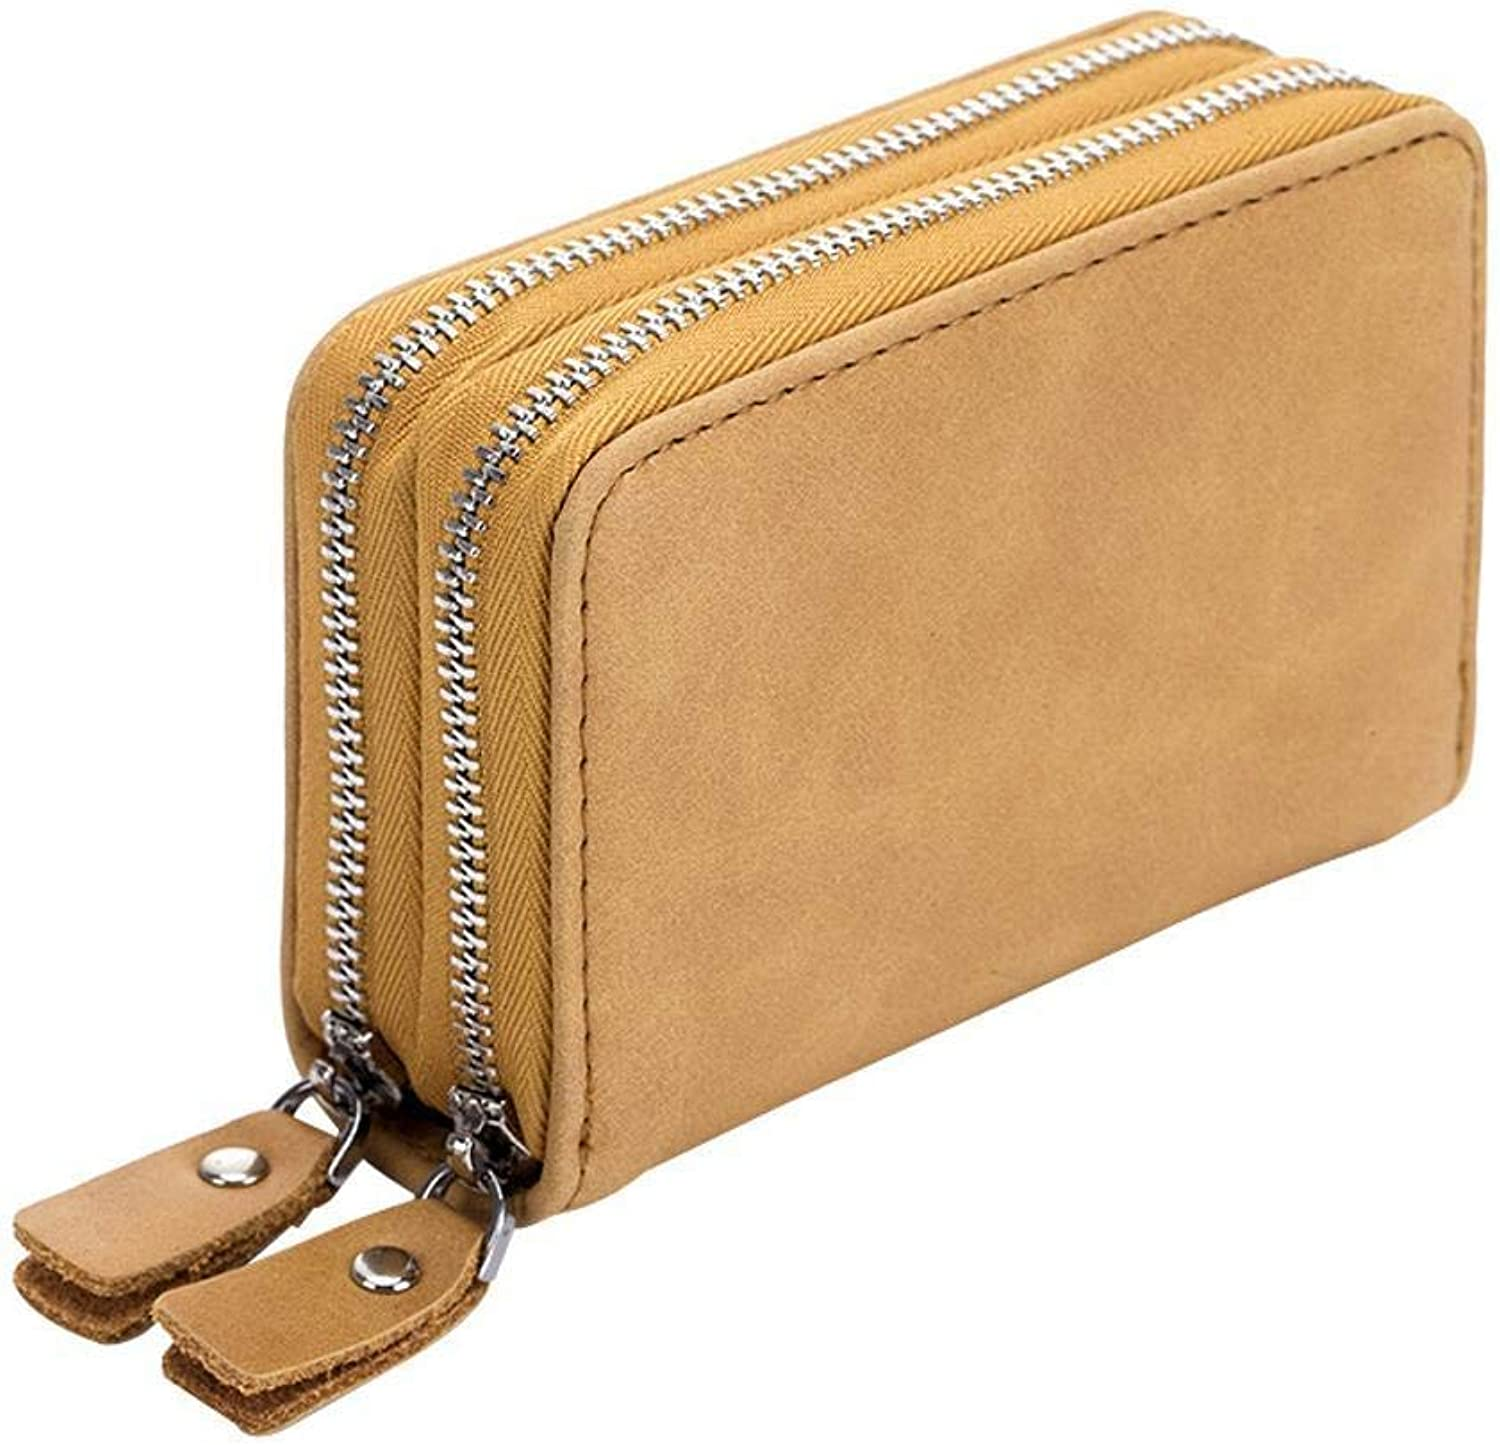 Girls Purse Women's Wallet MultiFunction DoubleDeck Card Bag Zipper Cross Section Key Bag Large Capacity Wallet 11  7.5  3.7cm (color   F)